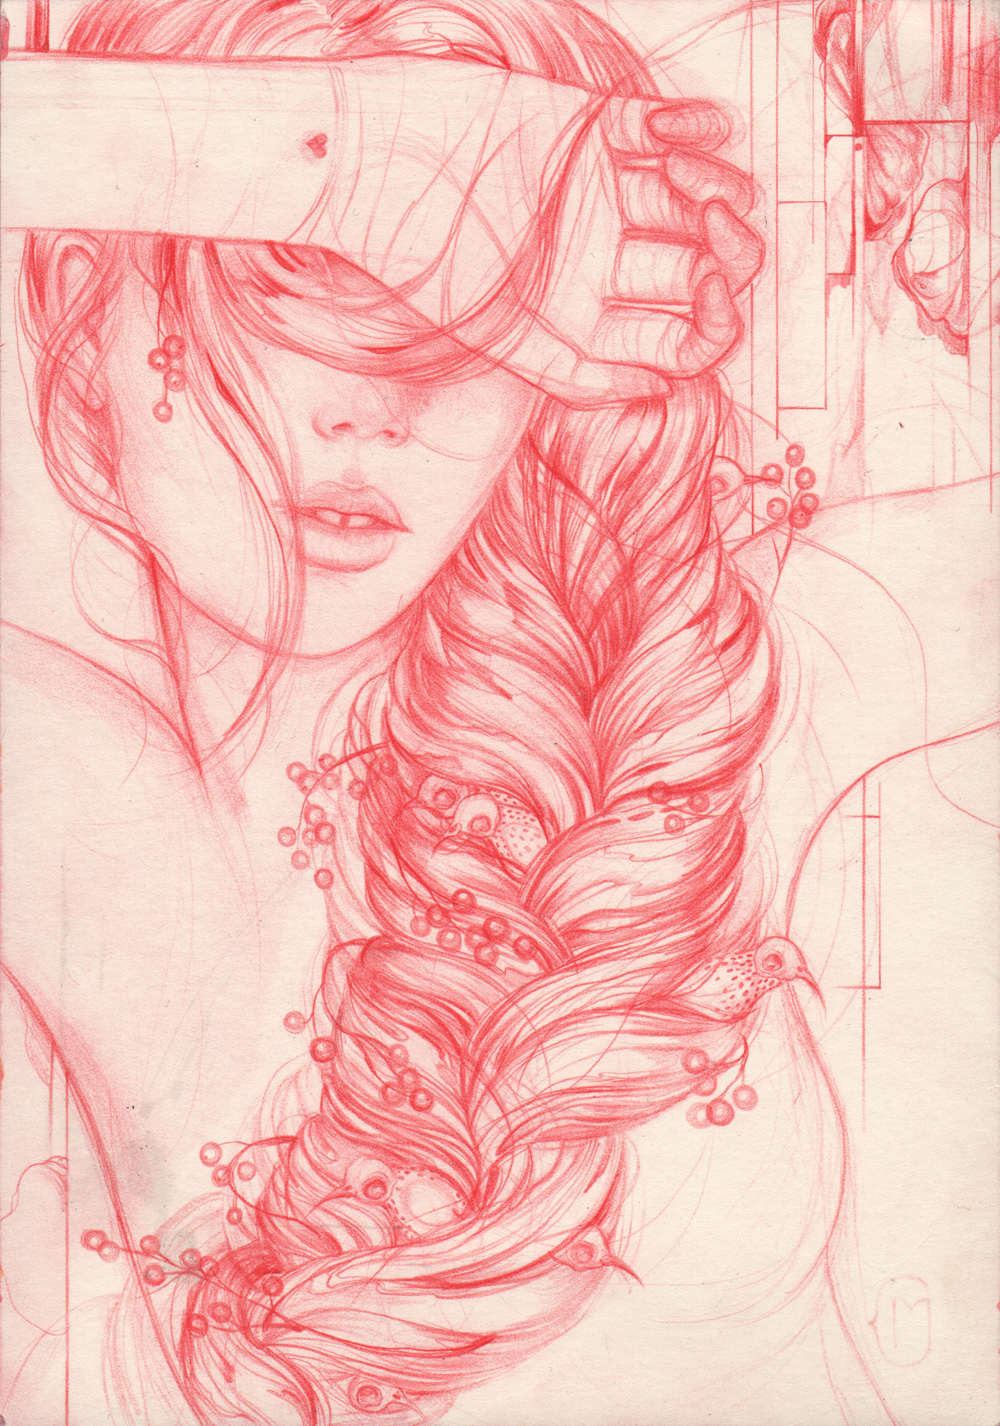 Birdbraid_total_red_pencil_sketch_WEB.jpg